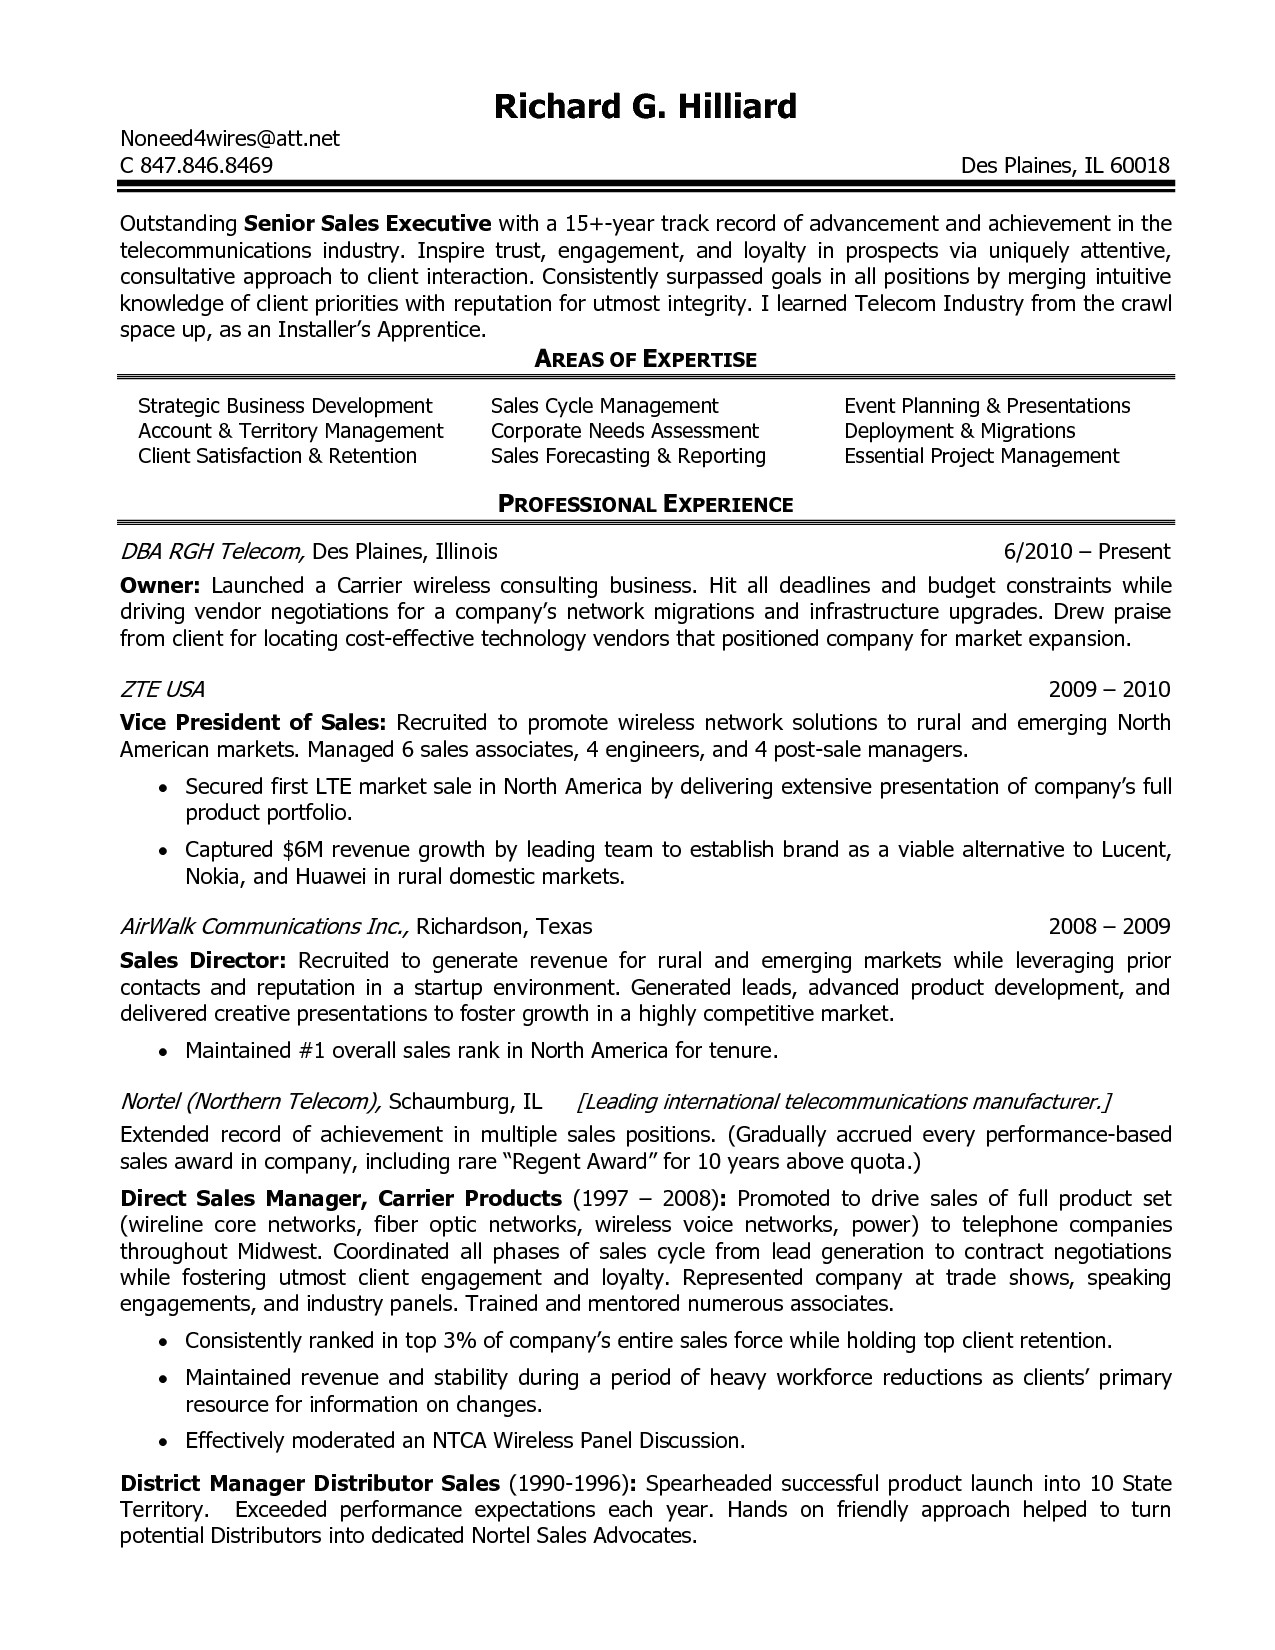 telecommunications manager resume